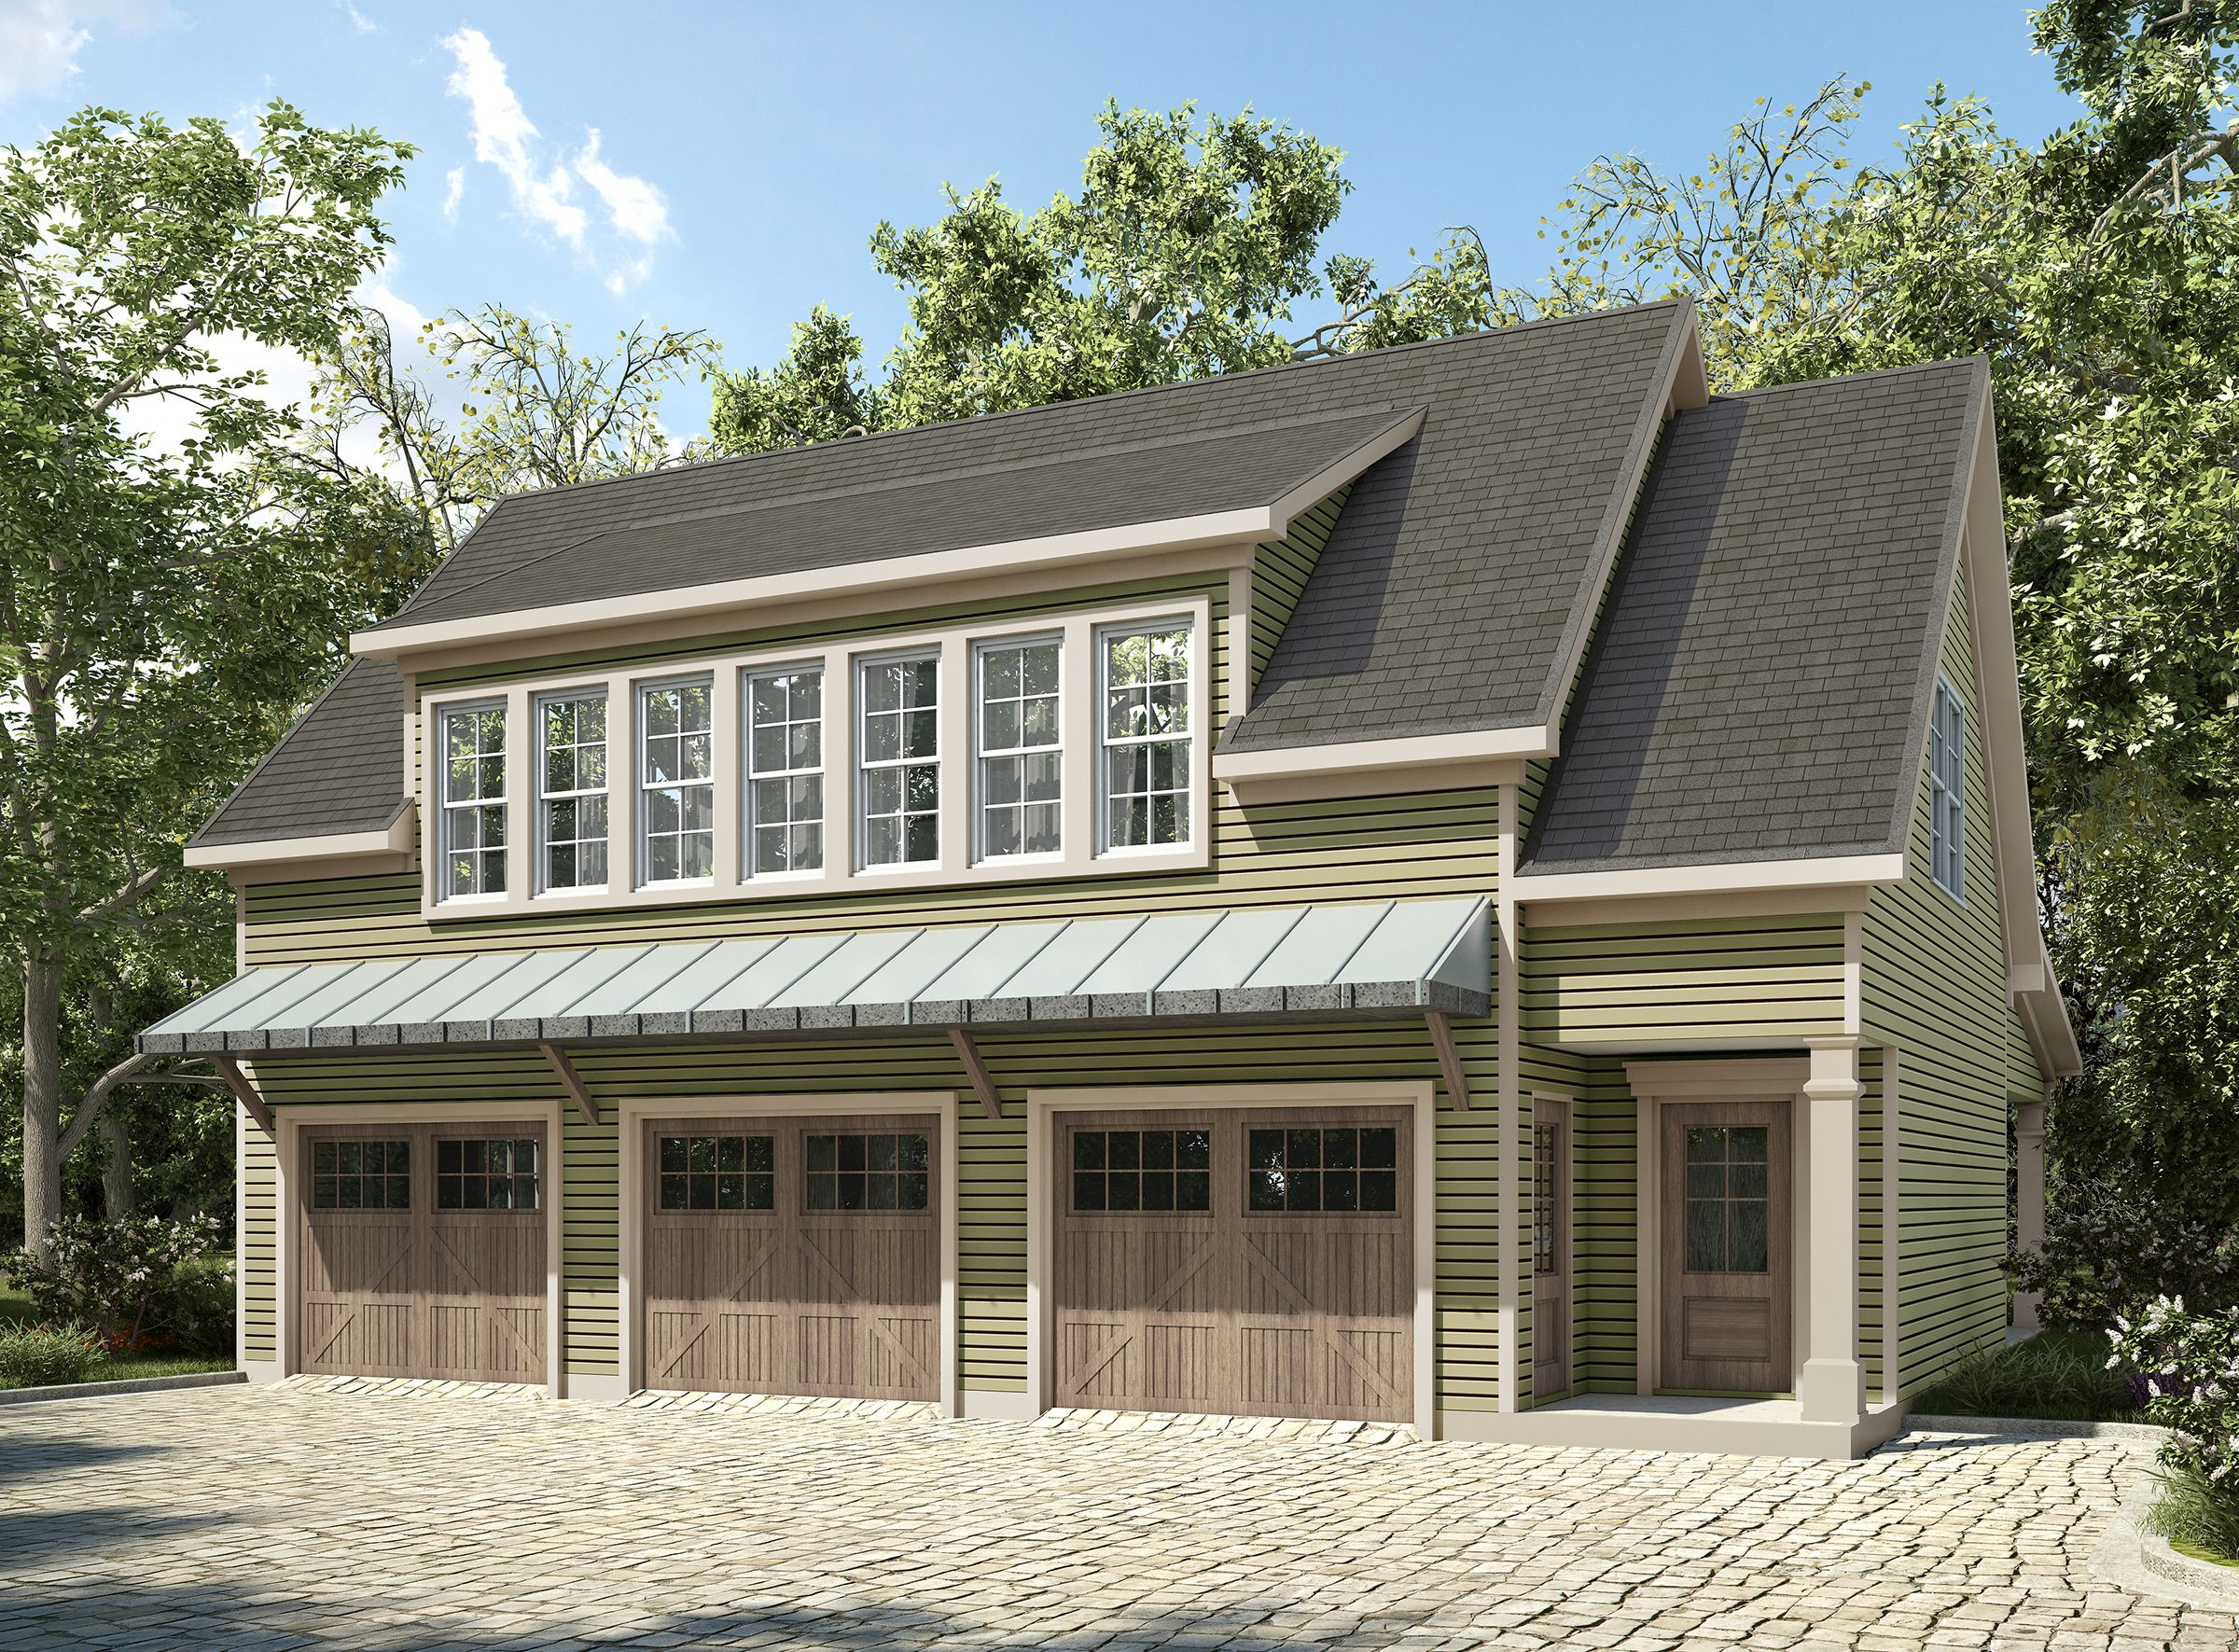 Plan 36057dk 3 bay carriage house plan with shed roof in 3 bay garage apartment plans